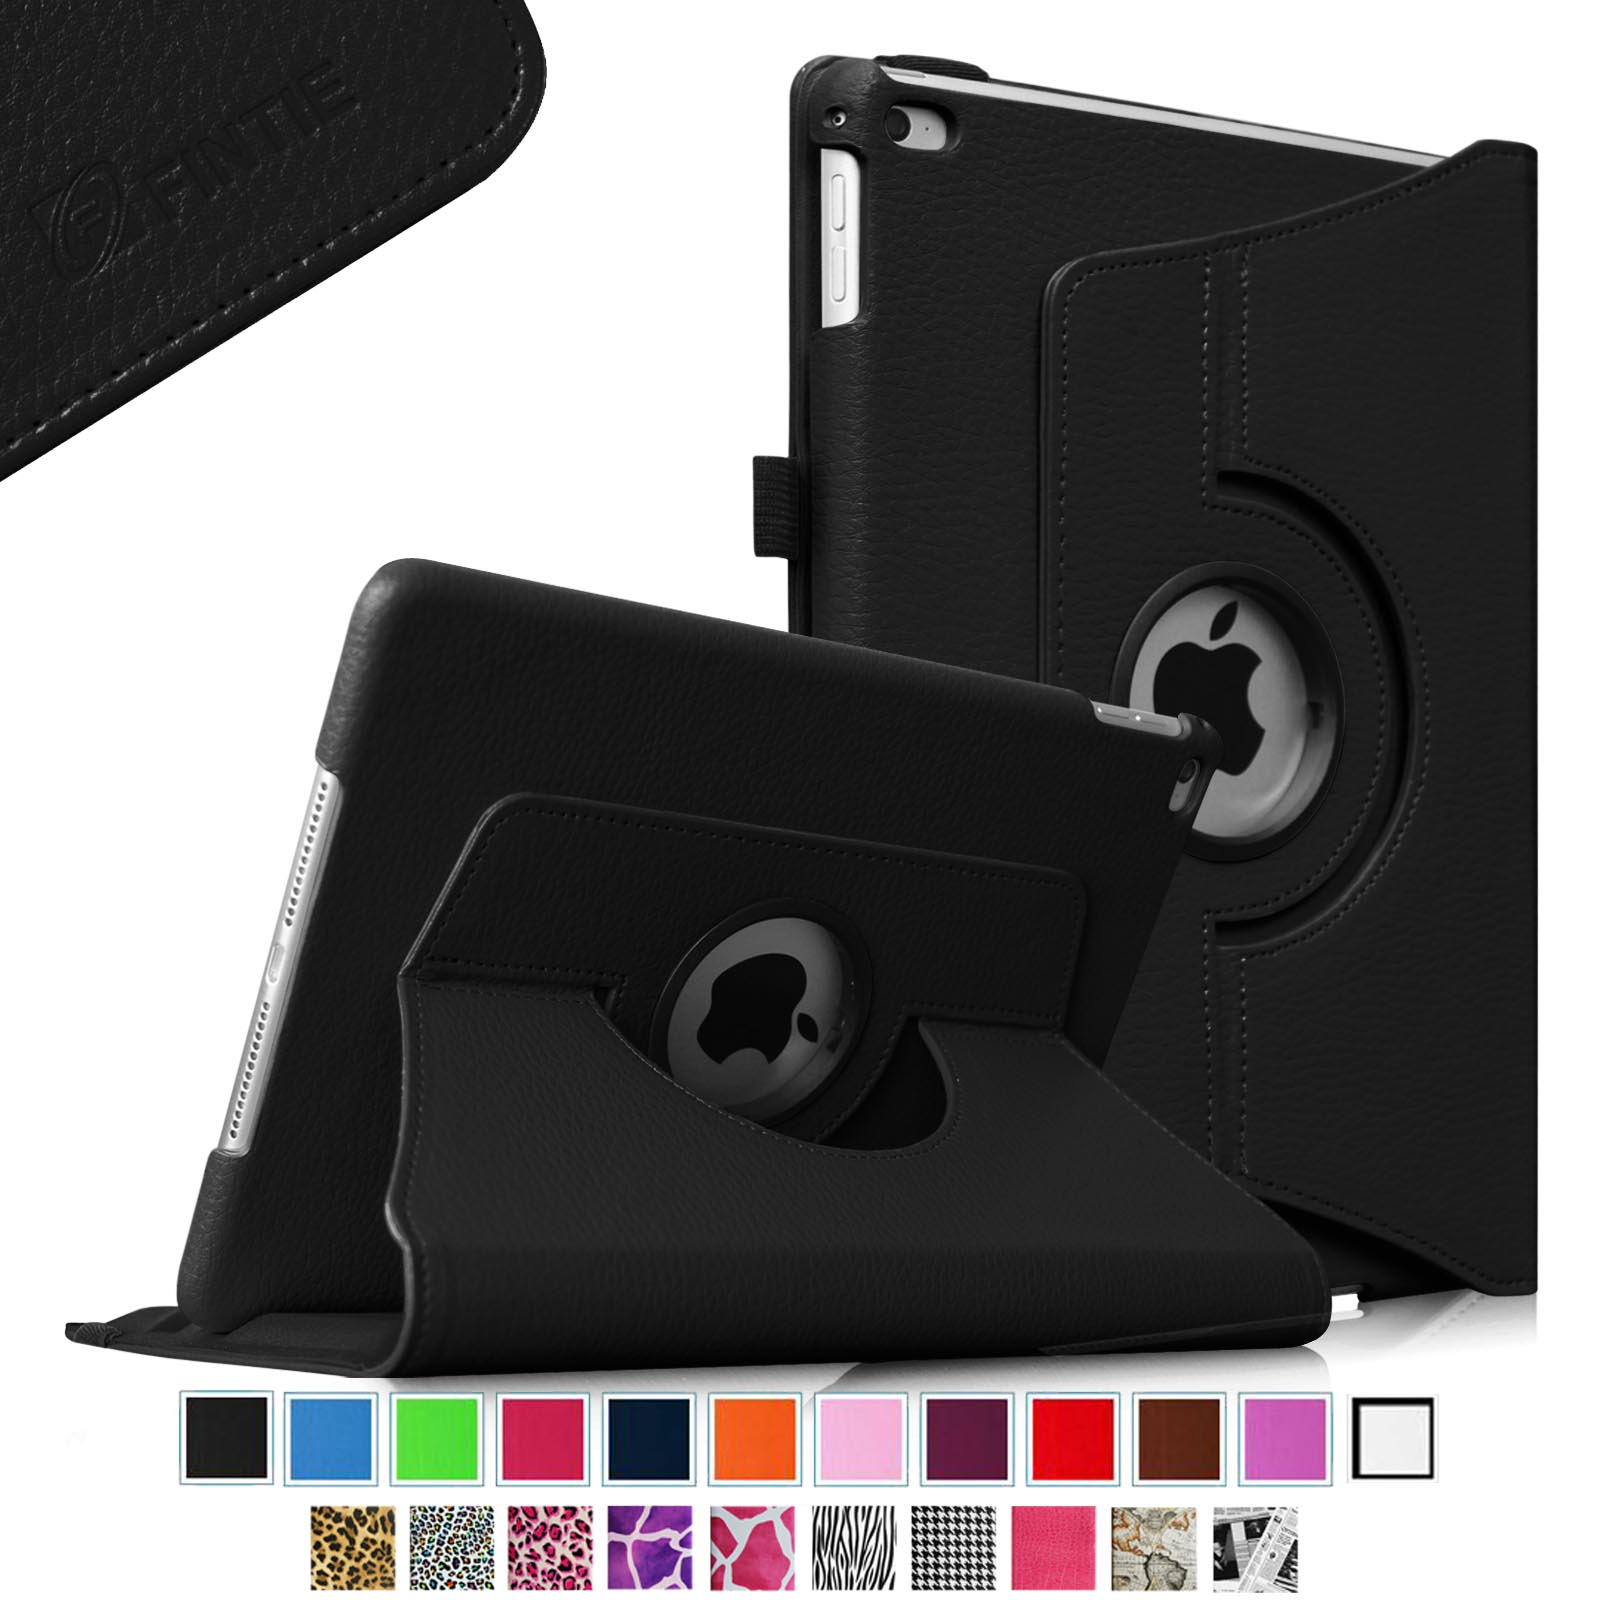 Fintie iPad Air 2 Case - 360 Degree Rotating Stand Case with Smart Cover Auto Sleep / Wake Feature, Black